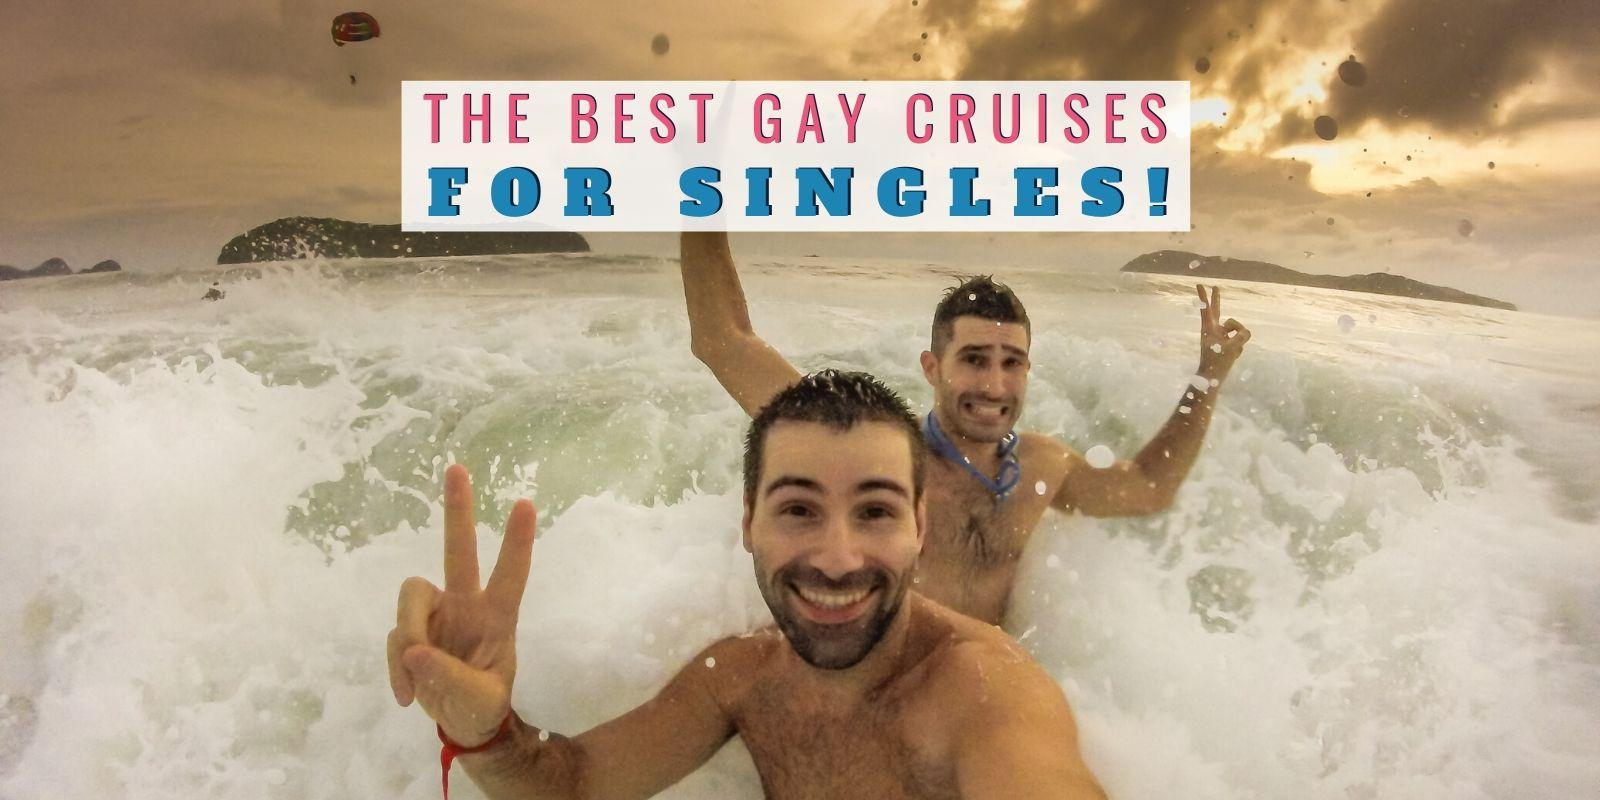 Read our round-up of the best gay cruises to go on if you're travelling solo and want to save money or are just a single looking to meet new friends!